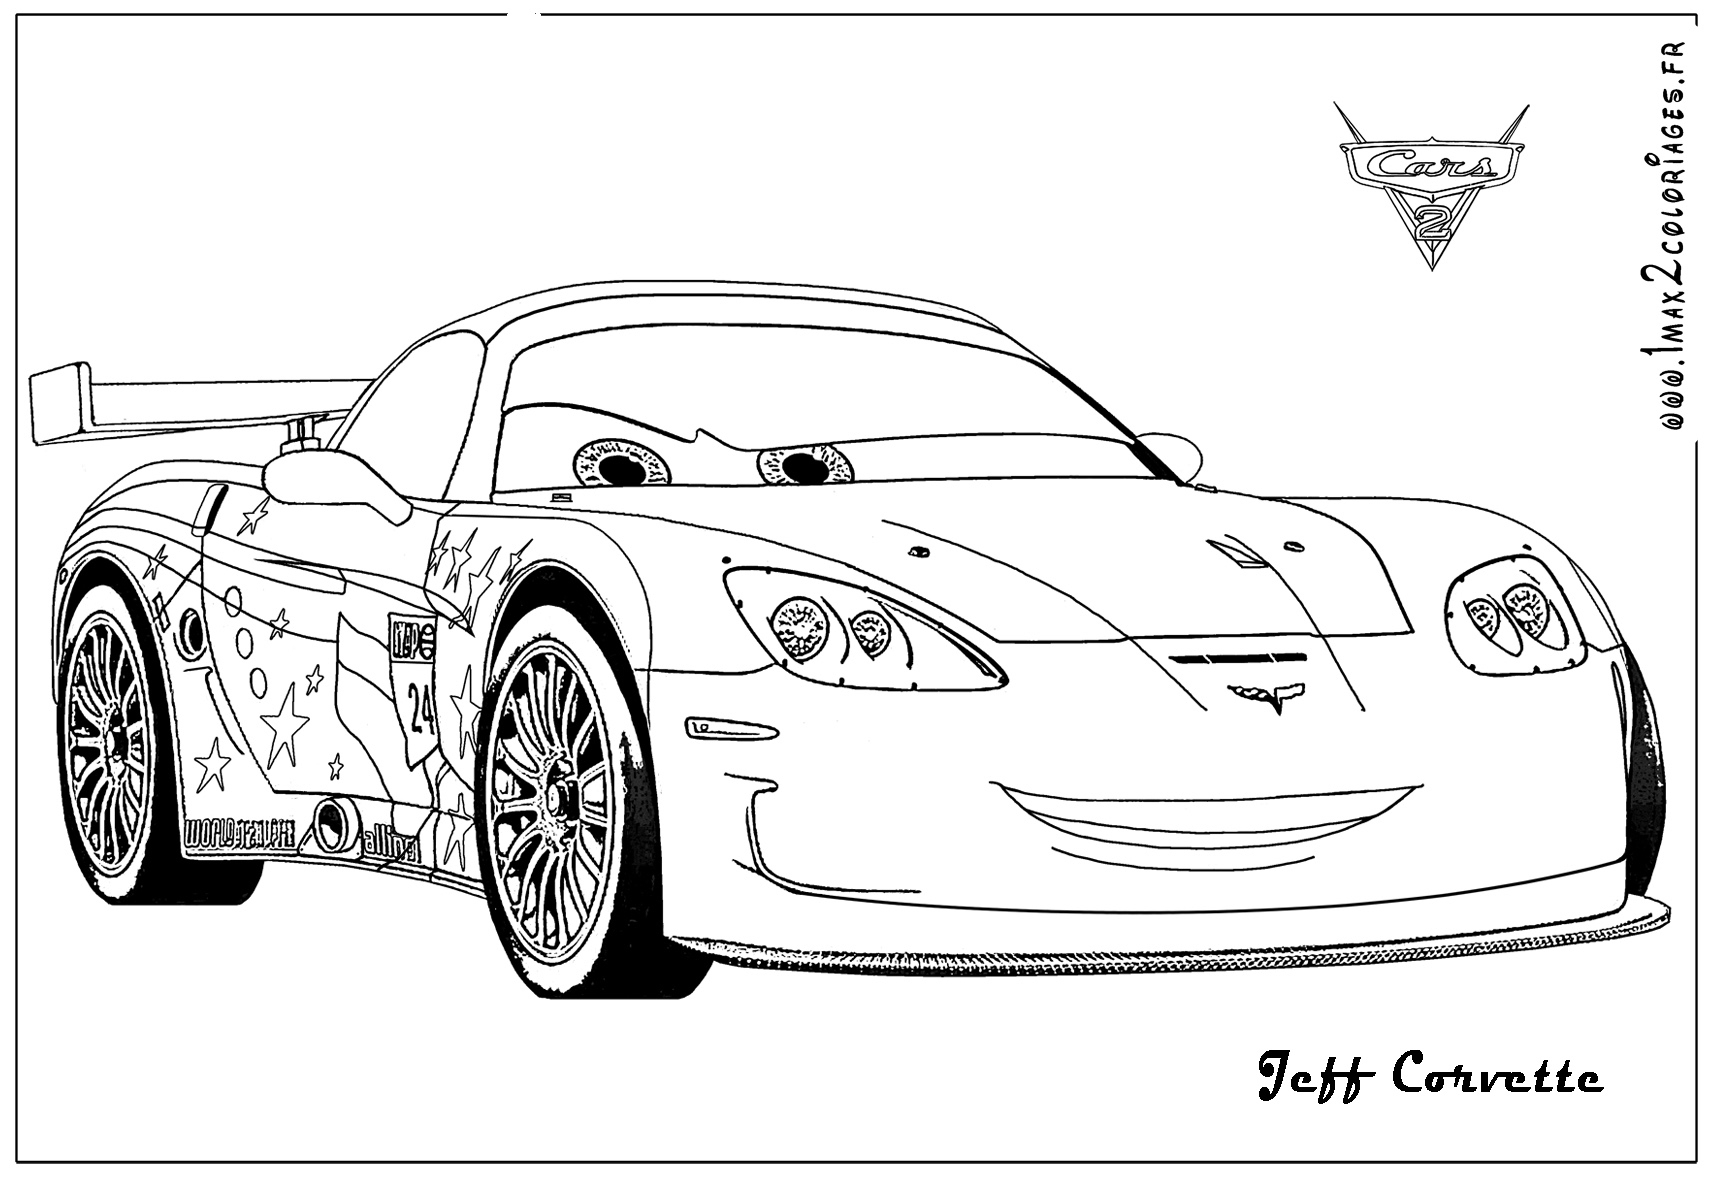 Coloriages Cars 2 - Jeff Corvette Cars 2 - Coloriages Les concernant Dessin À Colorier Cars